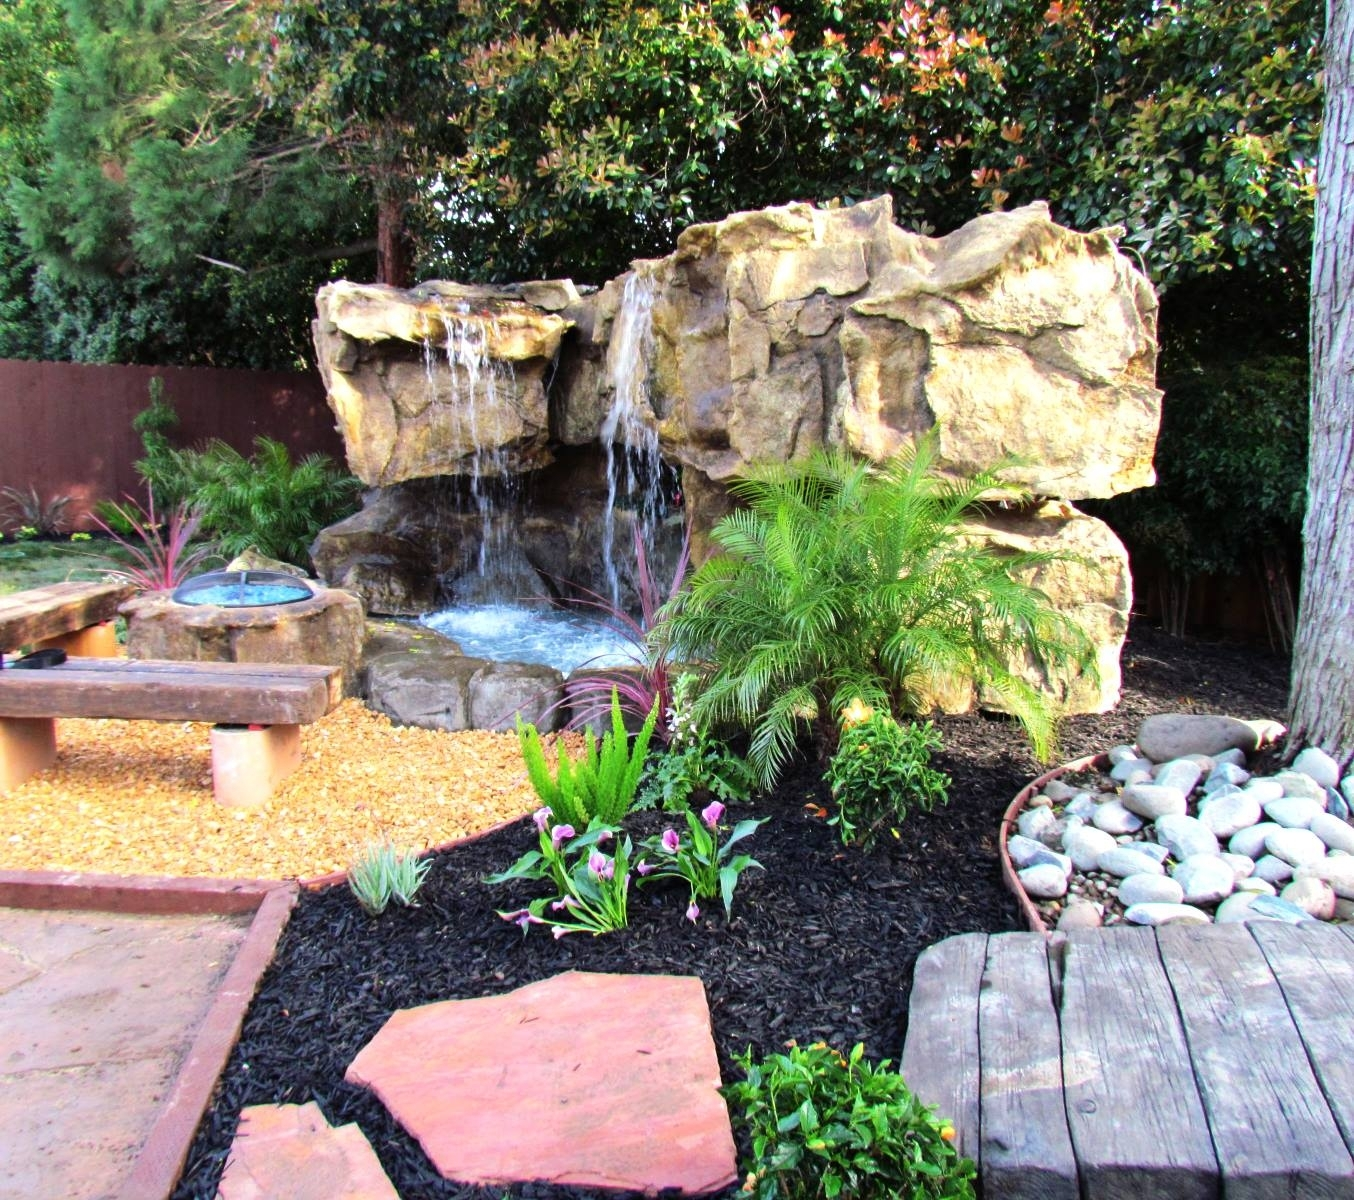 Landscaping Gulf Coast Scapes With Regard To Best Landscaping Plants Best Landscaping Plants And Trees